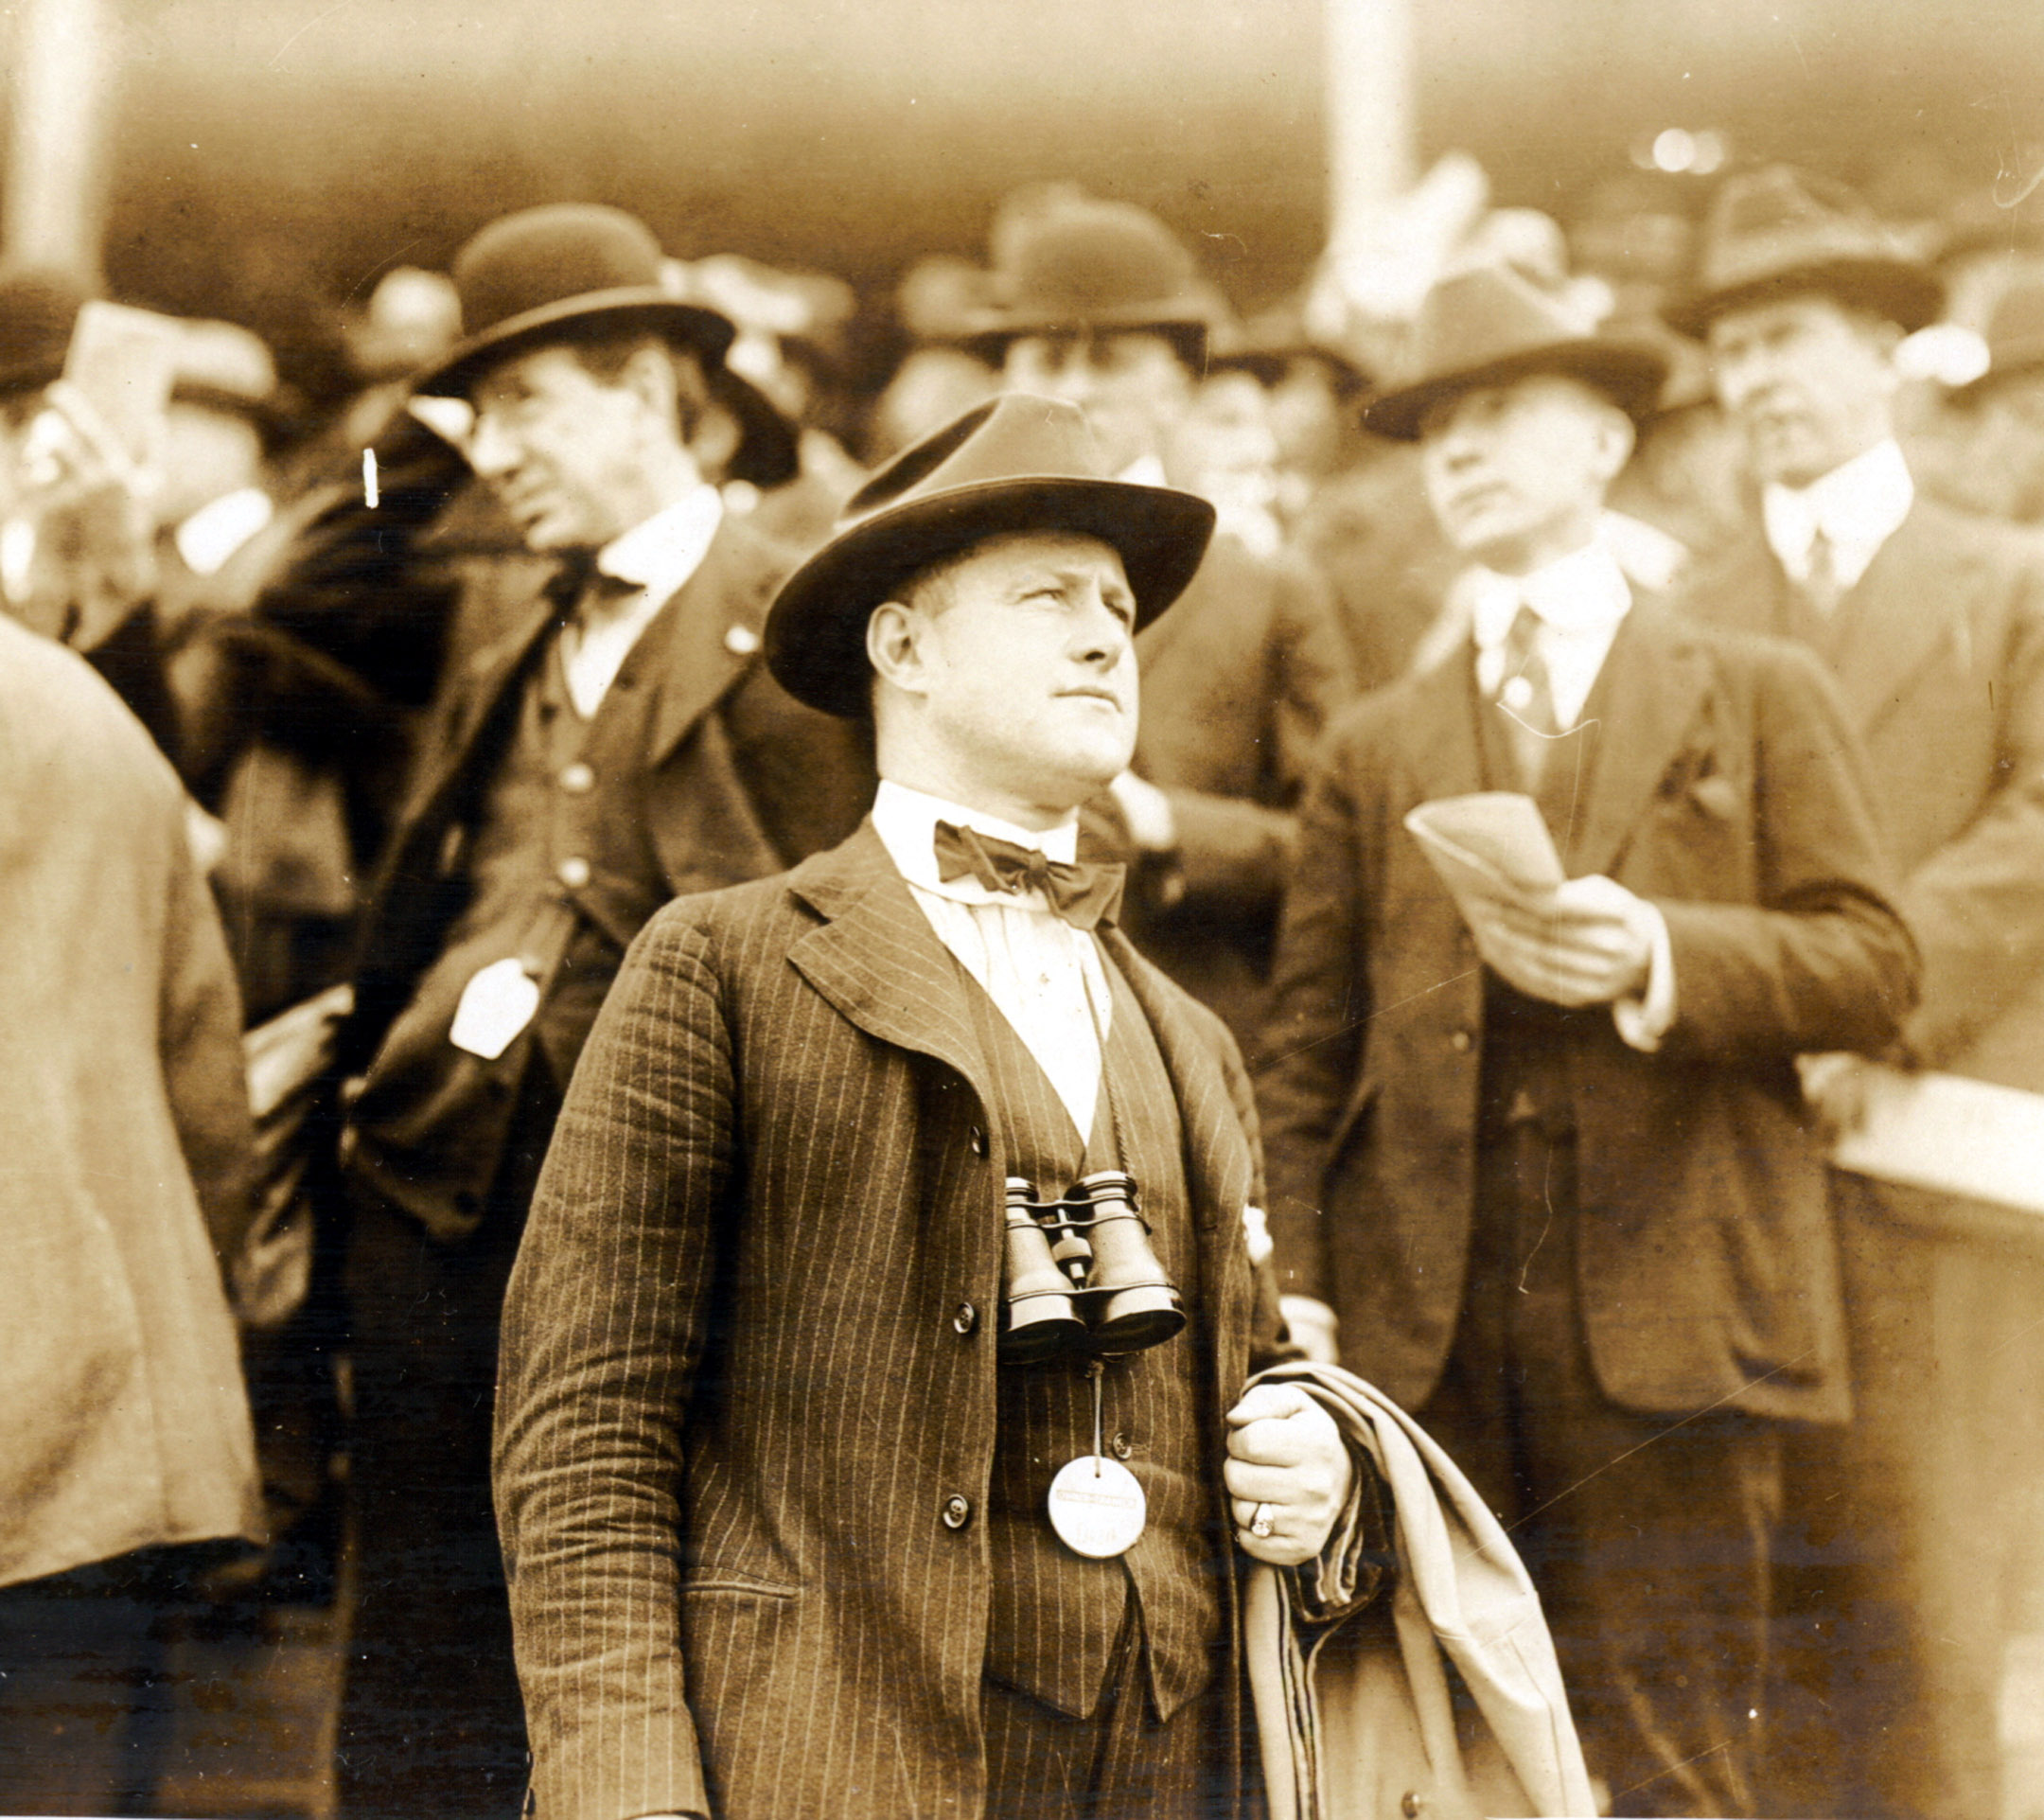 Ben Jones watching a race from the grandstand area of an unidentified track (Museum Collection)